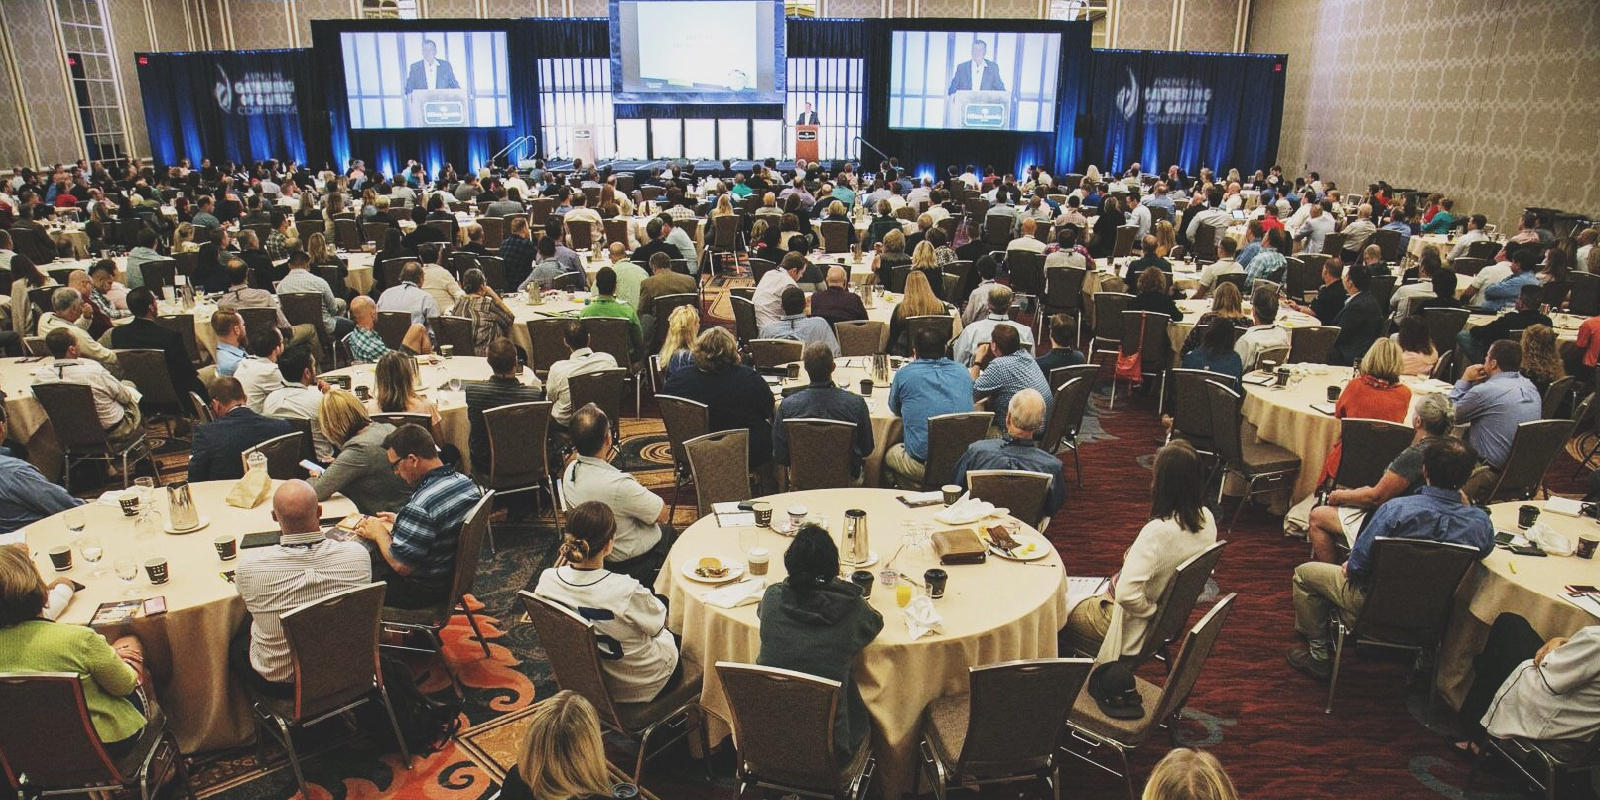 4 Takeaways from The Gathering